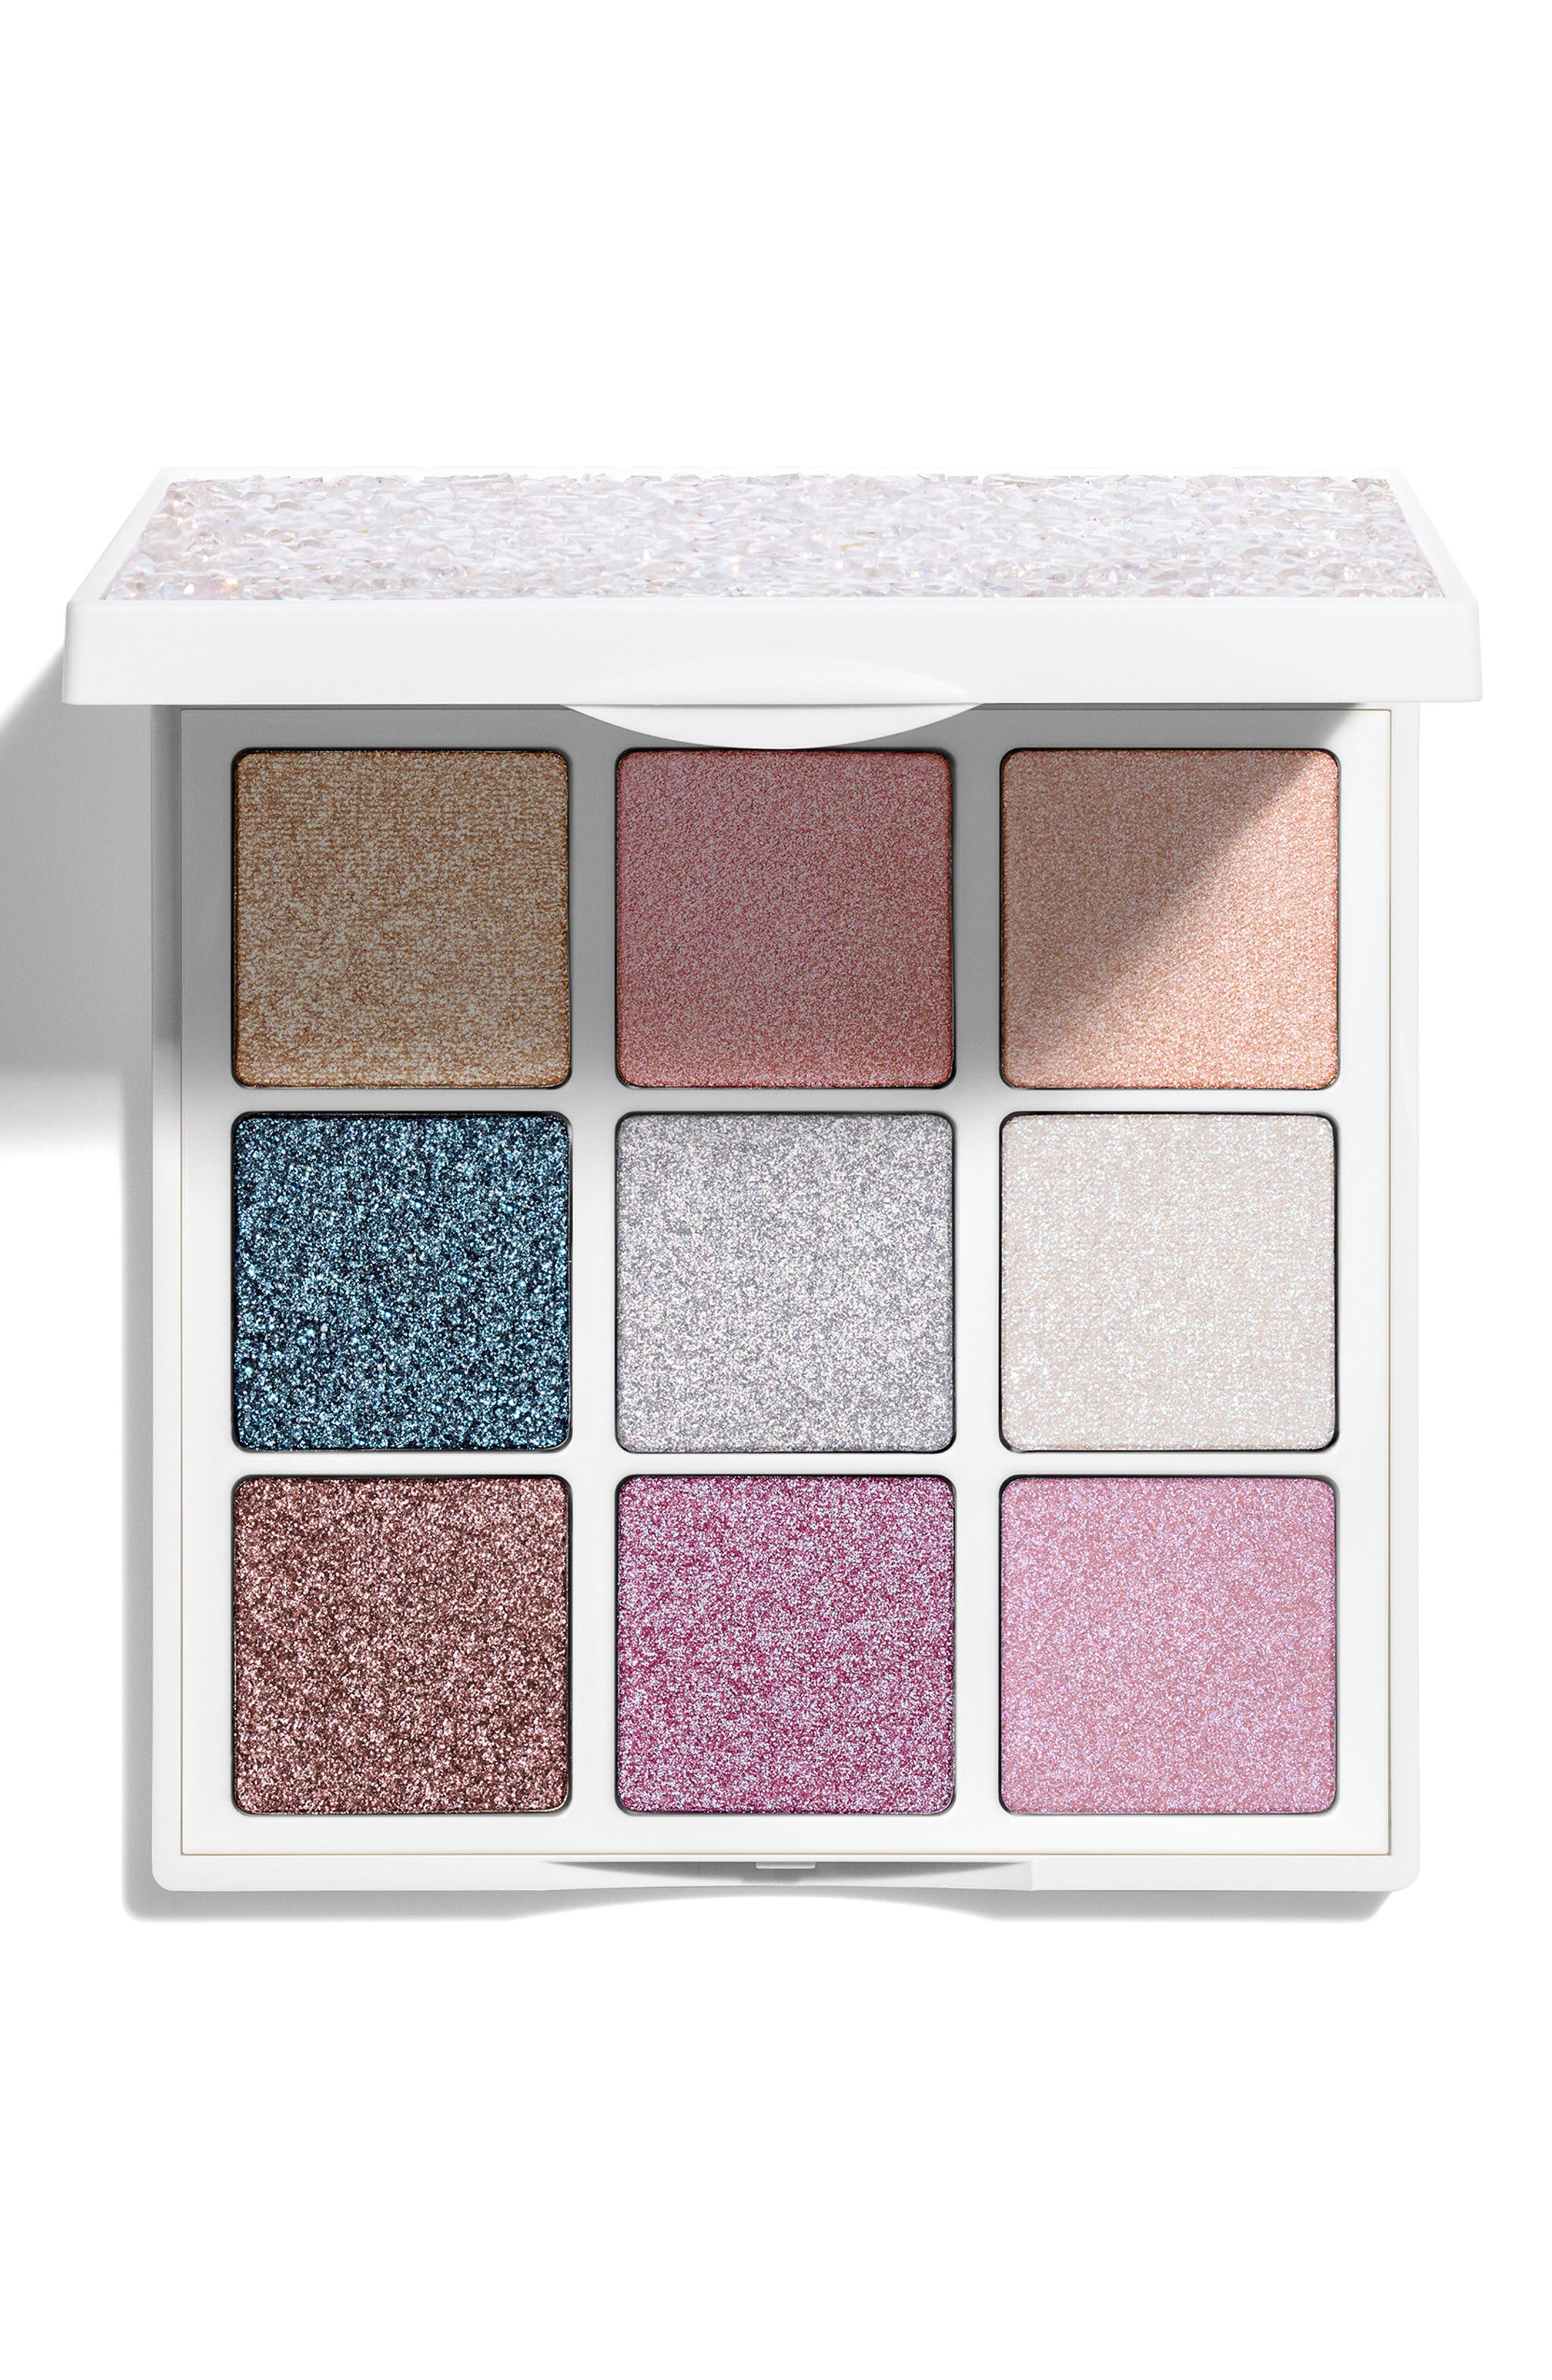 Polar Ice Eyeshadow Palette,                             Main thumbnail 1, color,                             NO COLOR